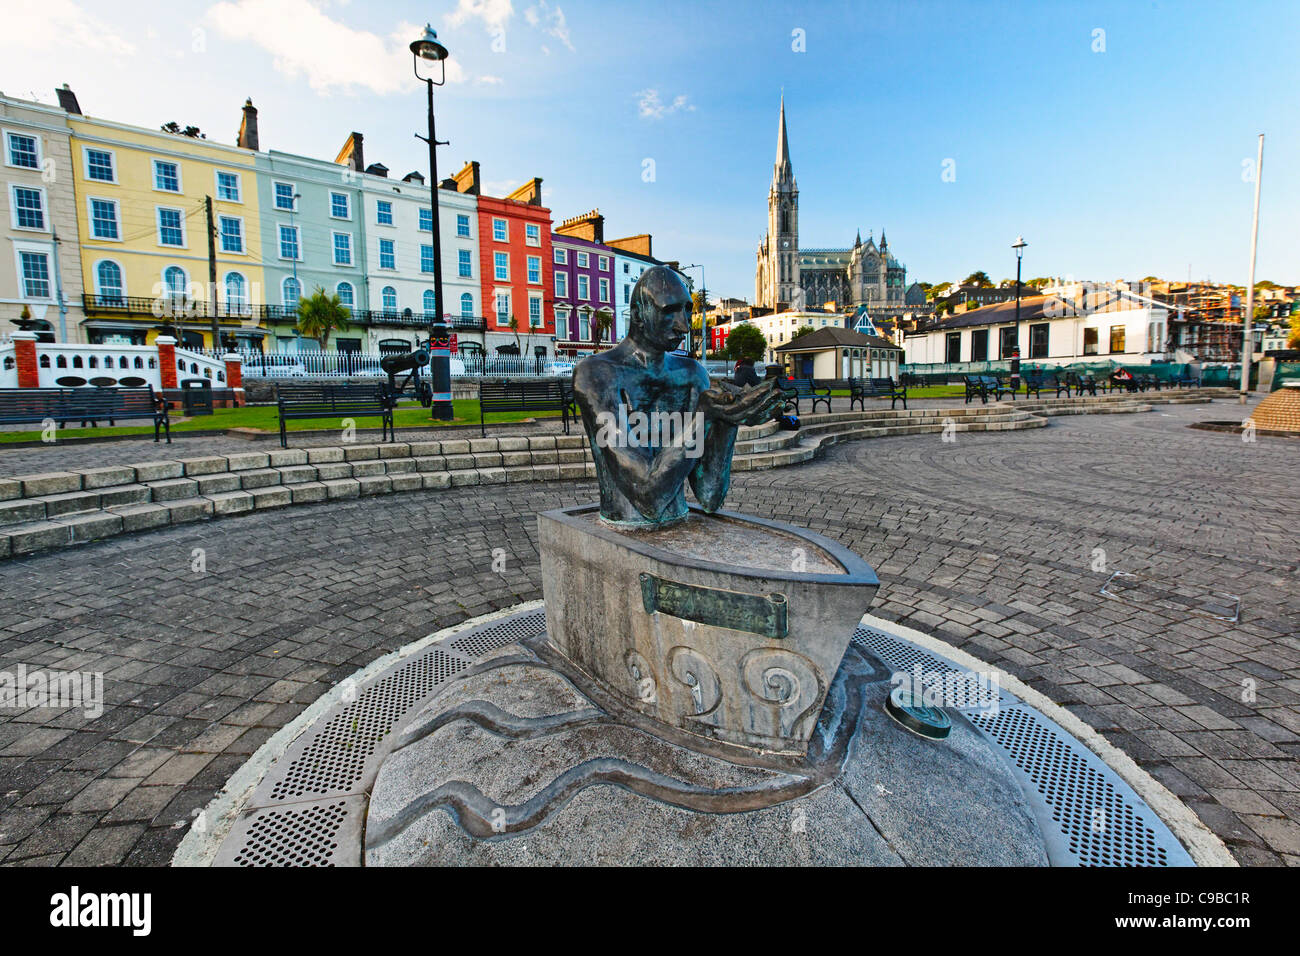 Sculpture The Navigator in JF Kennedy Park, Cobh City, County Cork, Republic of Ireland - Stock Image